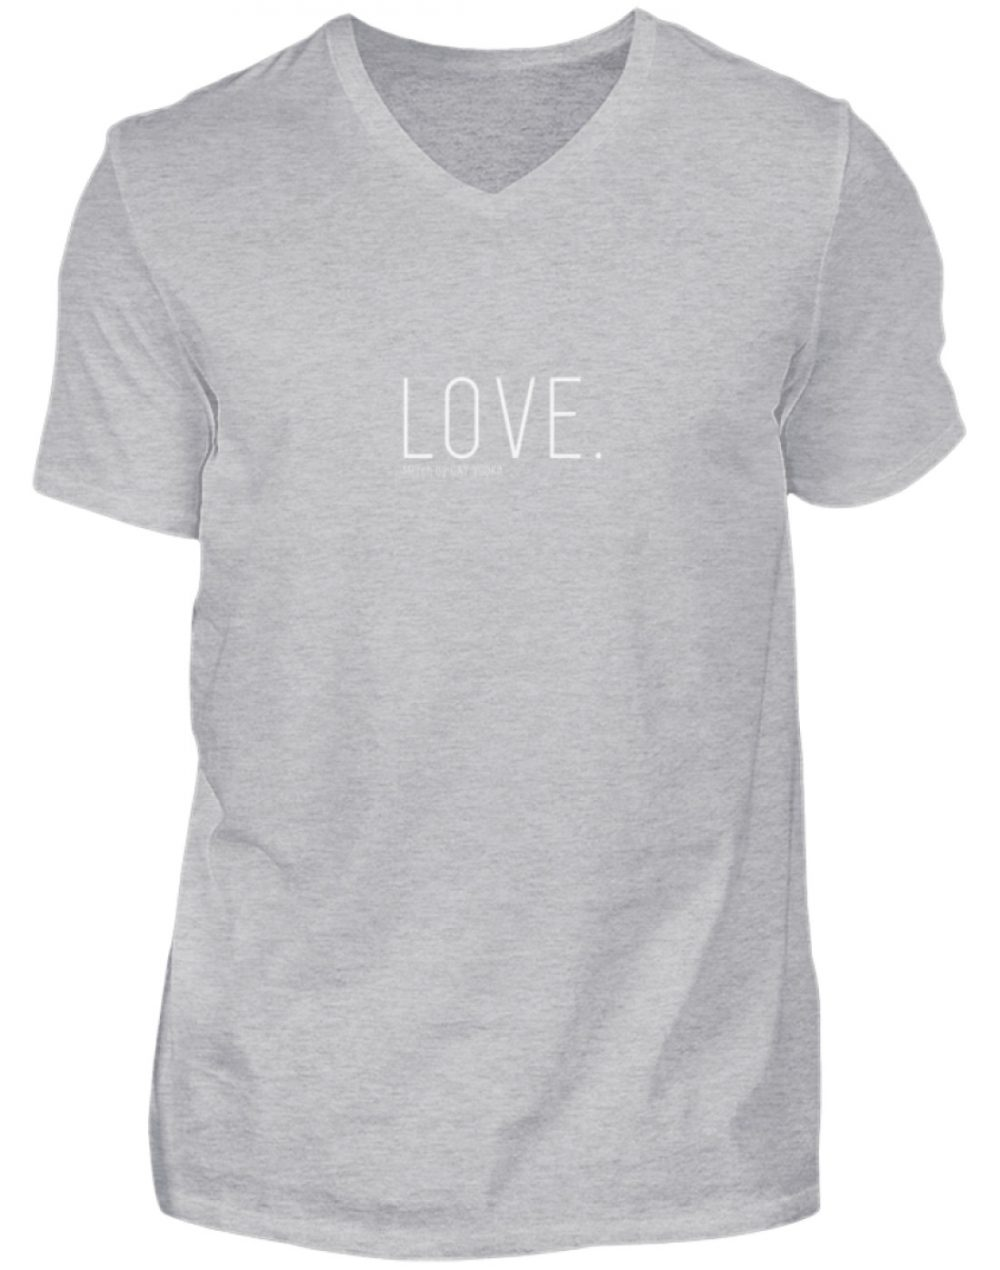 LOVE. - Herren V-Neck Shirt-17